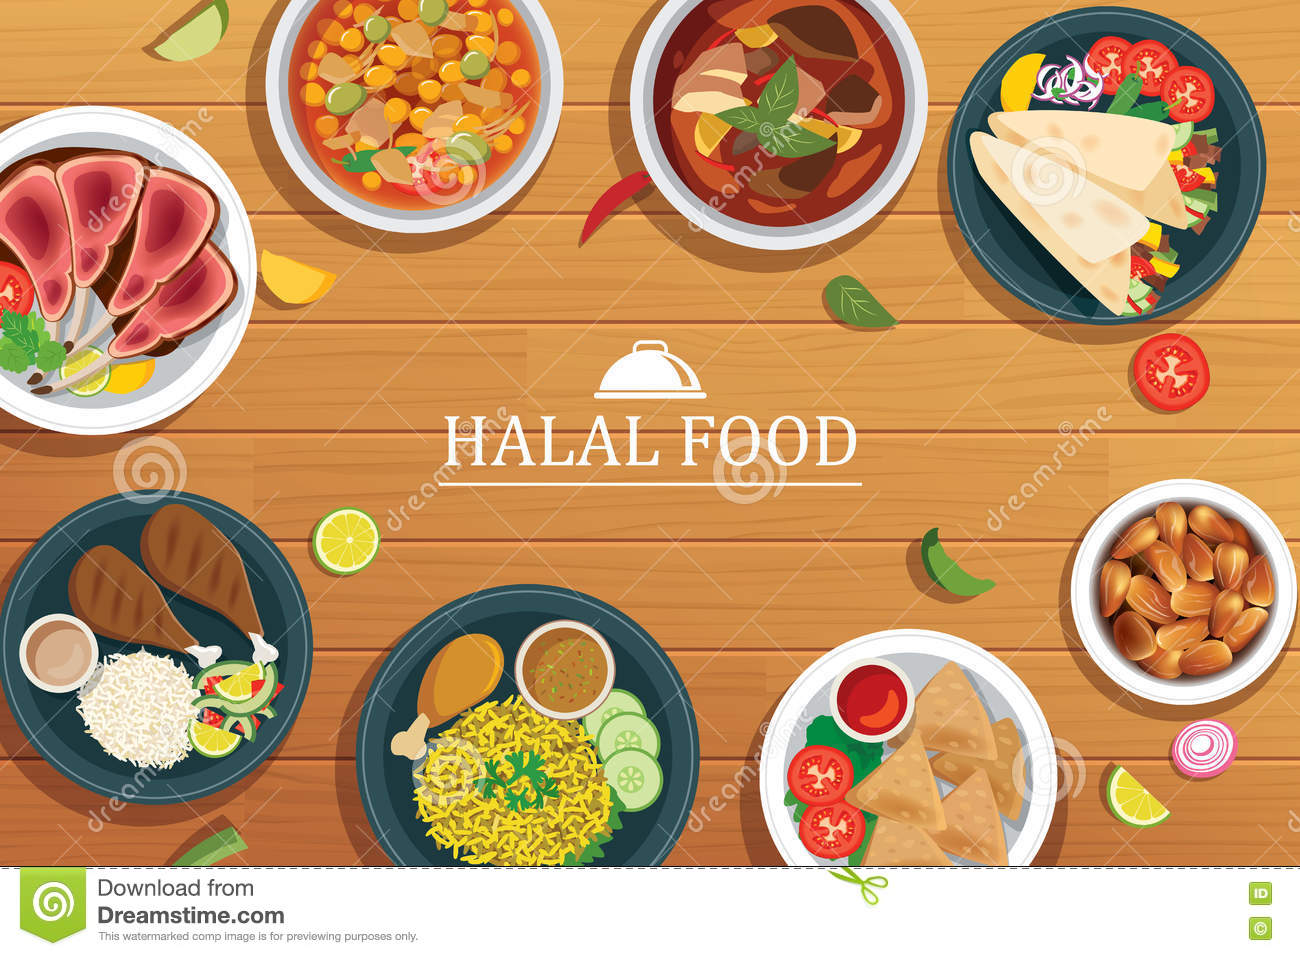 Halal Food On A Wooden Background. Stock Vector - Image: 75786473